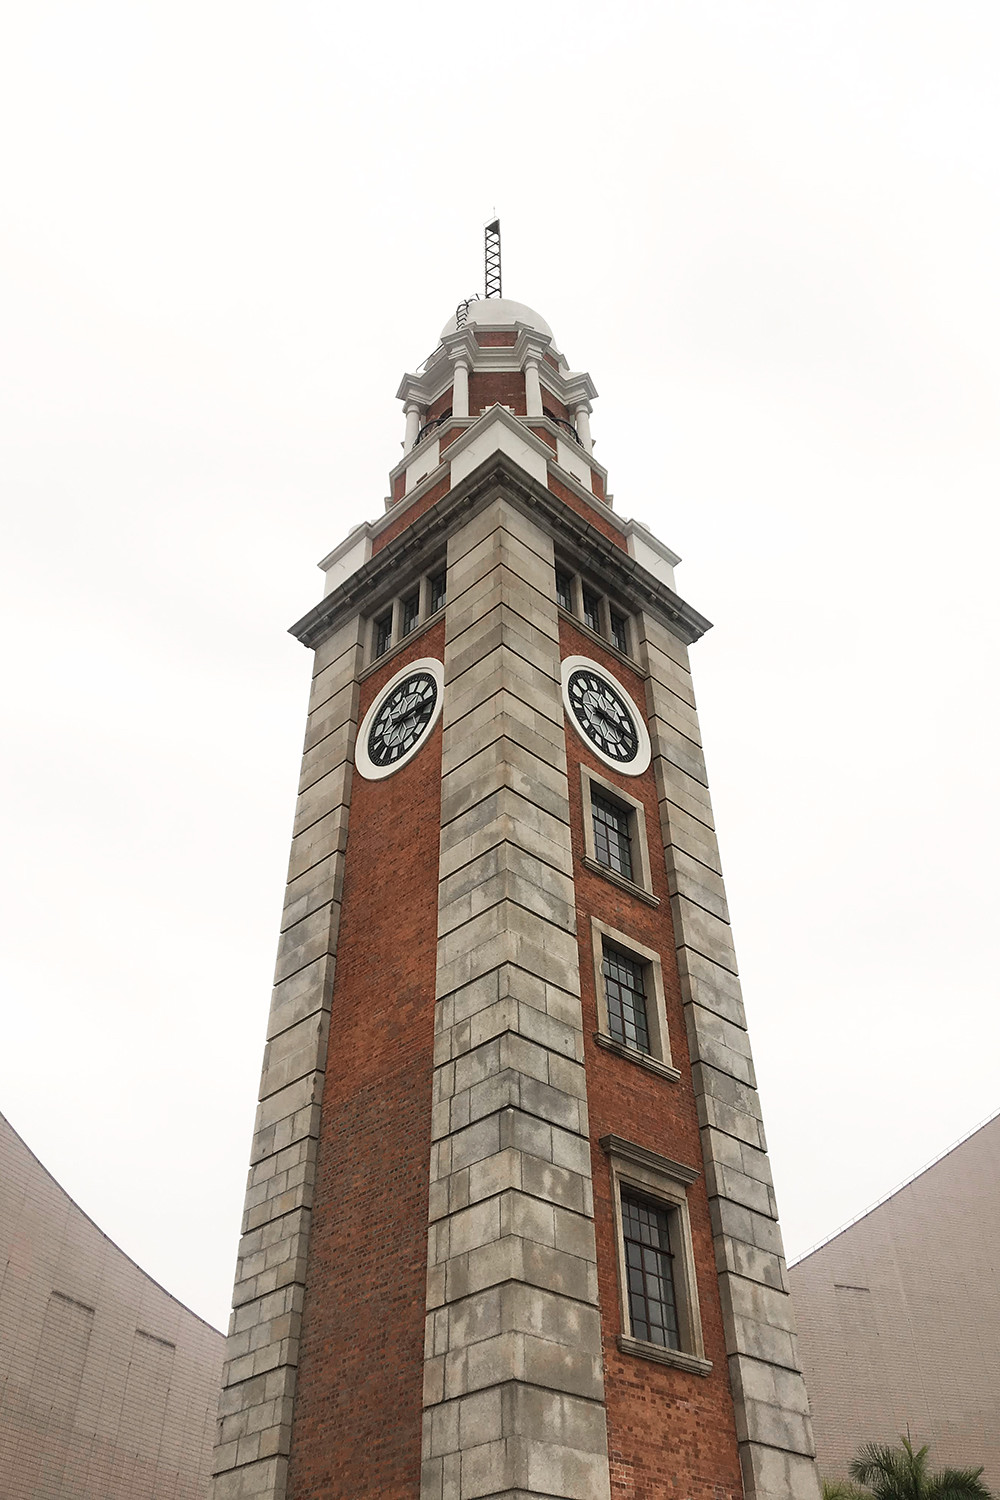 22hongkong-tsimshatsui-clock-tower-travel